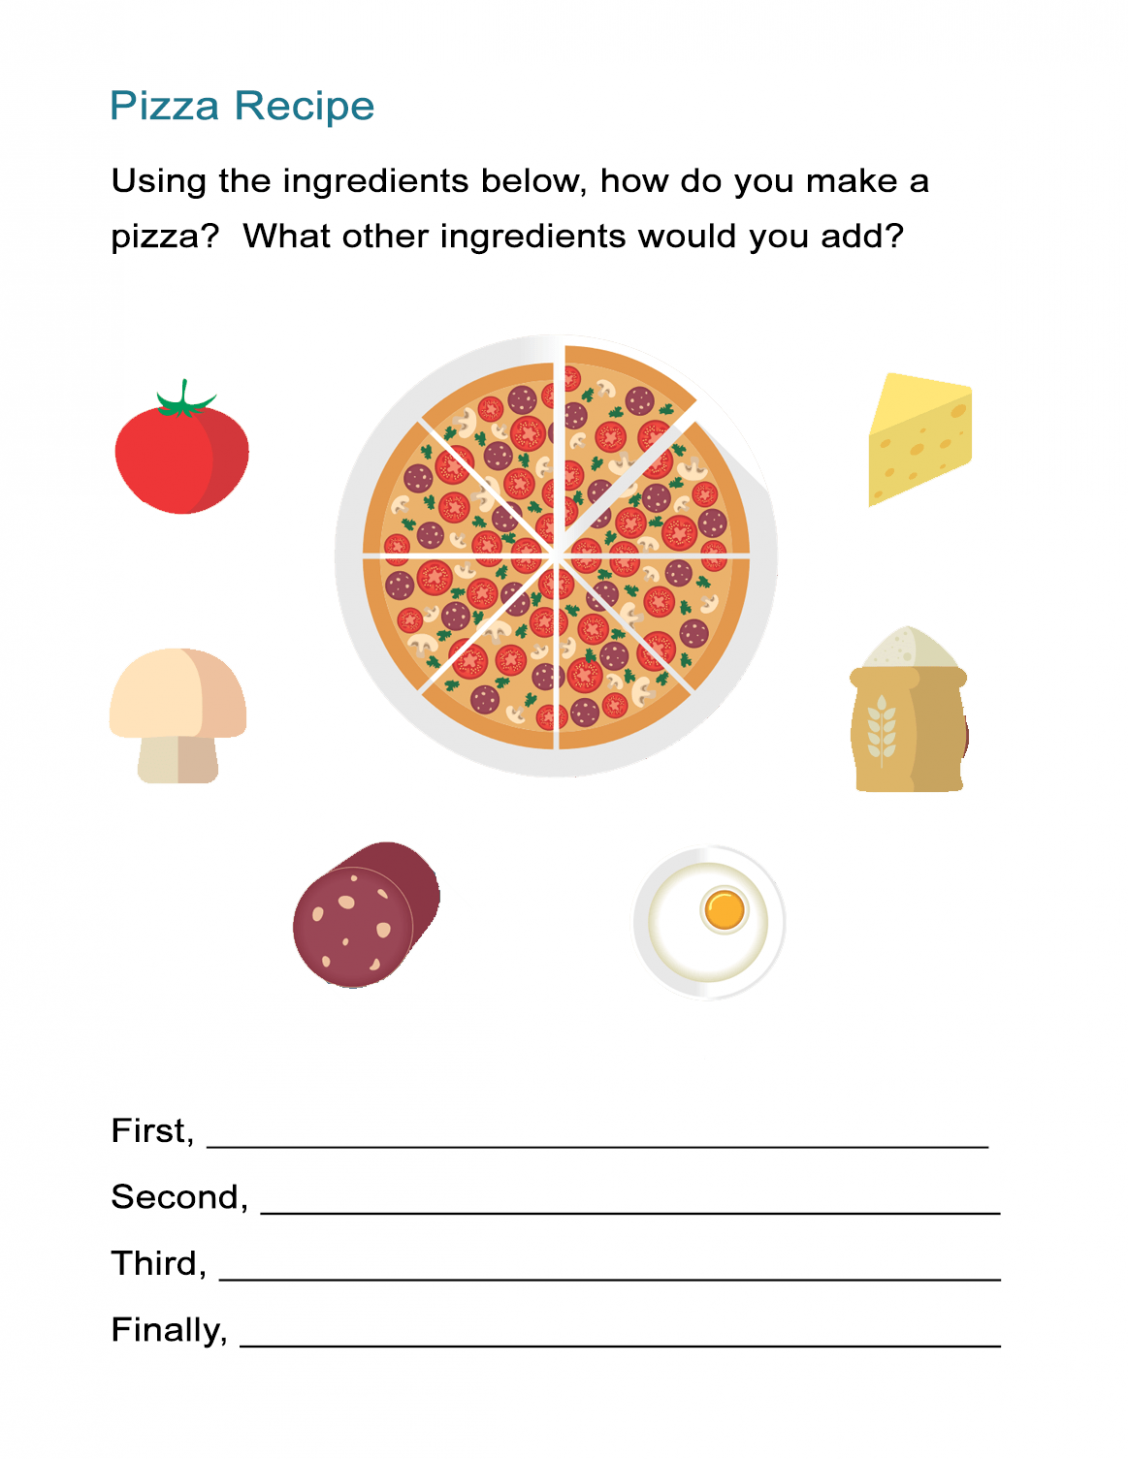 Transition Words Worksheet: The Pizza Recipe Cooking Instructions ...